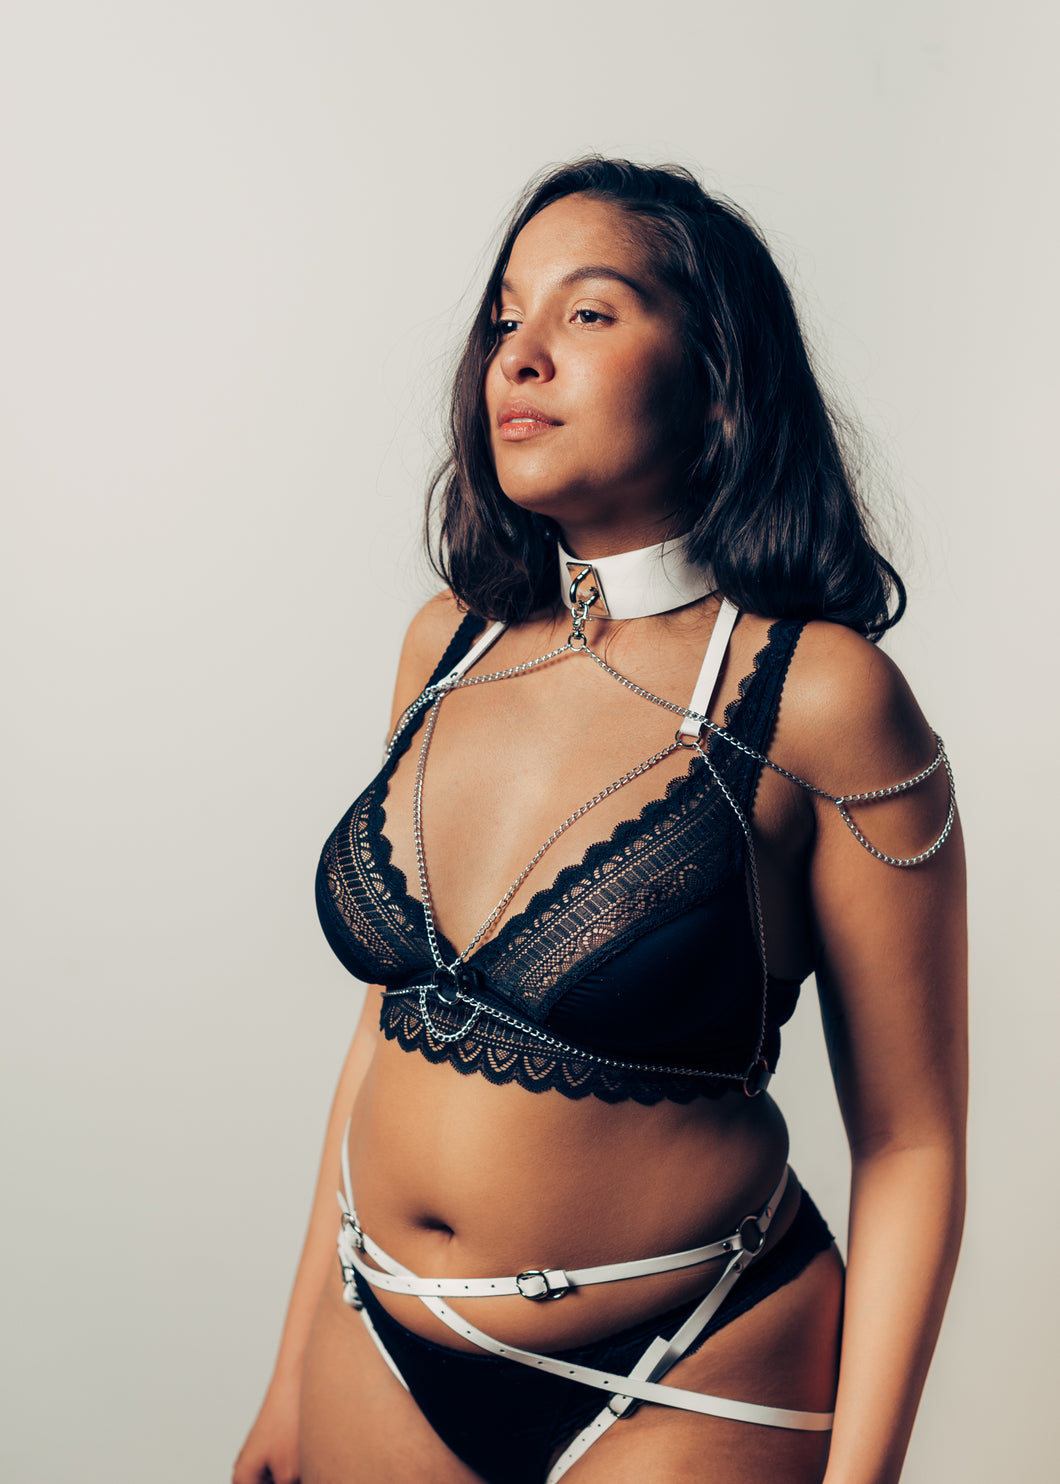 Tiana leather harness, set of 3: bridal collection - Amoreze